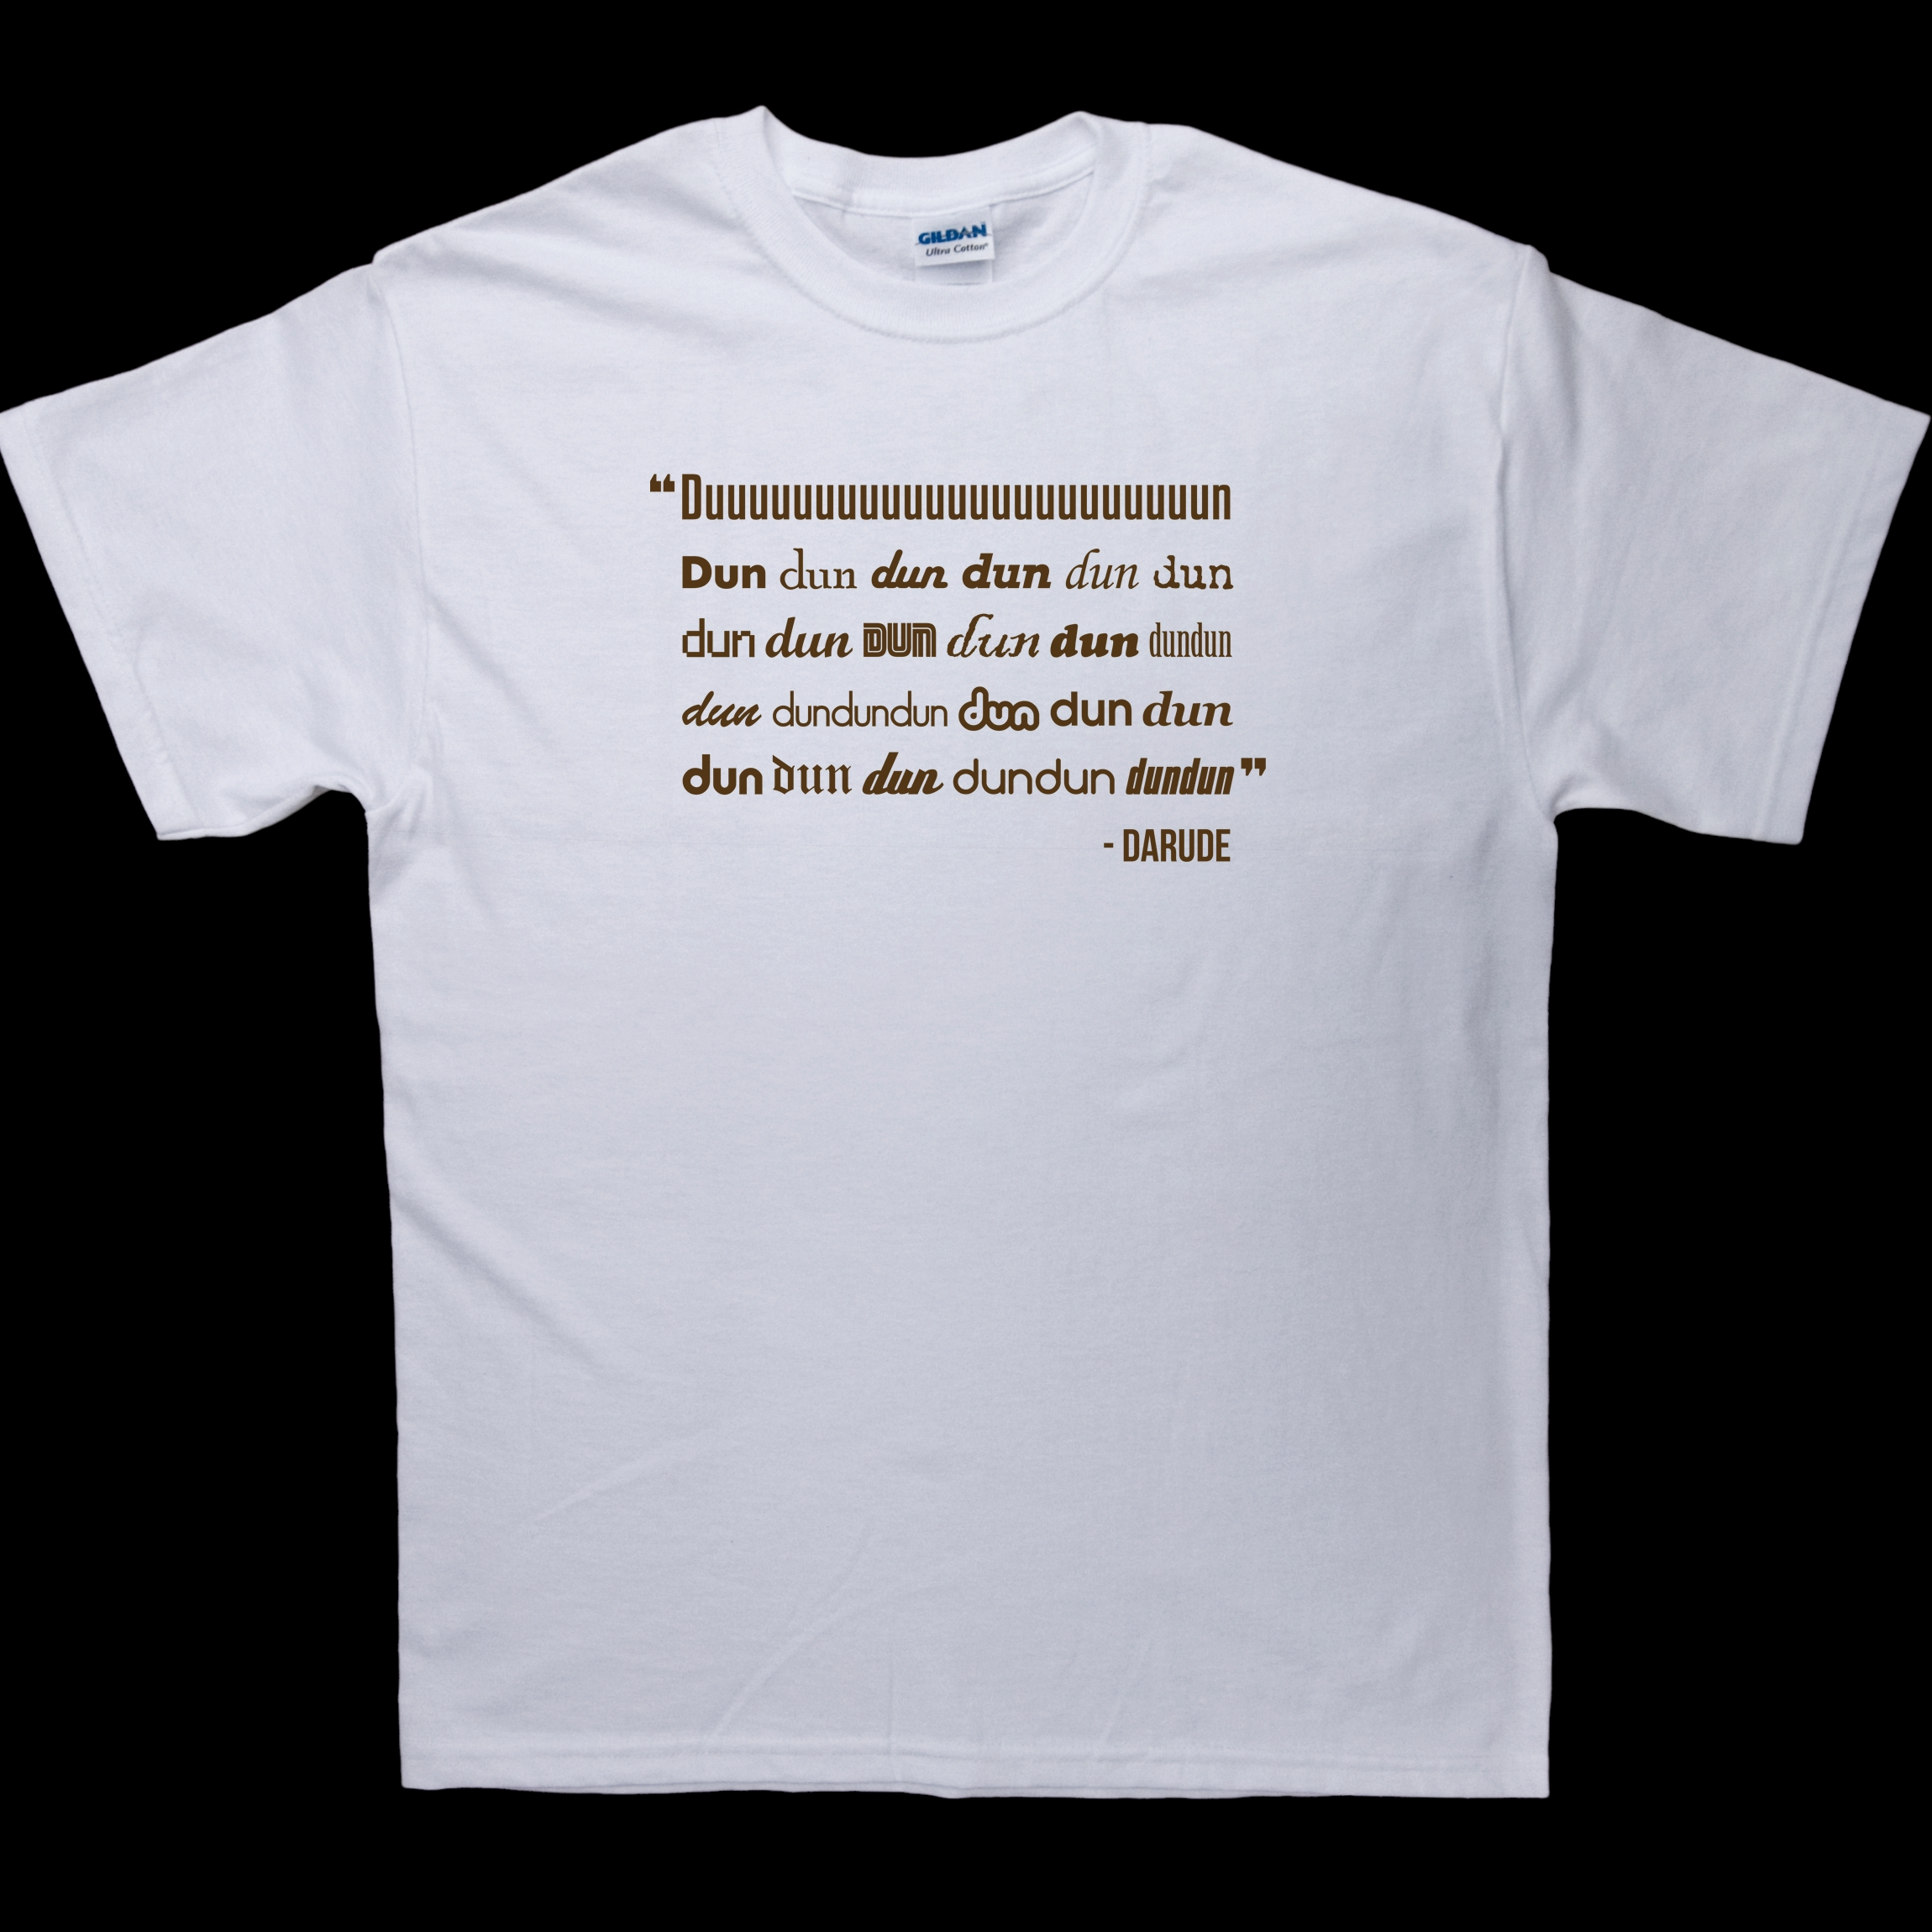 Darude - Sandstorm Lyrics T-Shirt